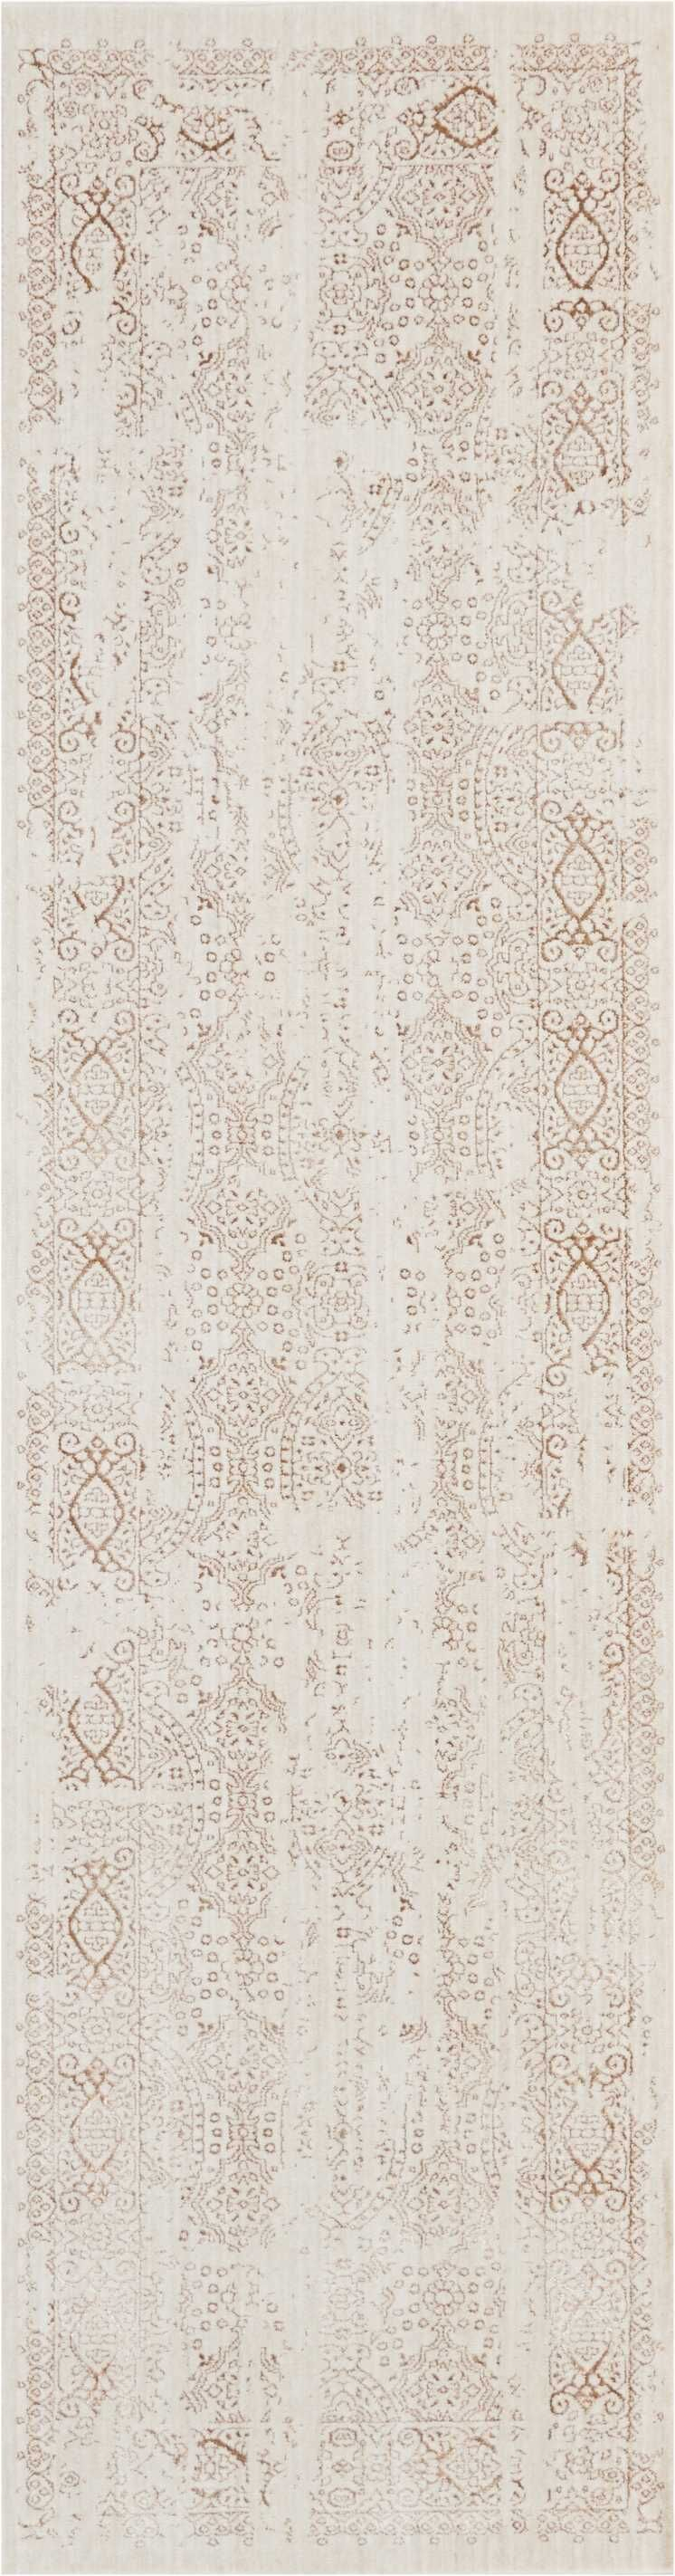 Silver Screen Ivory/Mocha Area Rug Rug Size: Rectangle 9'10